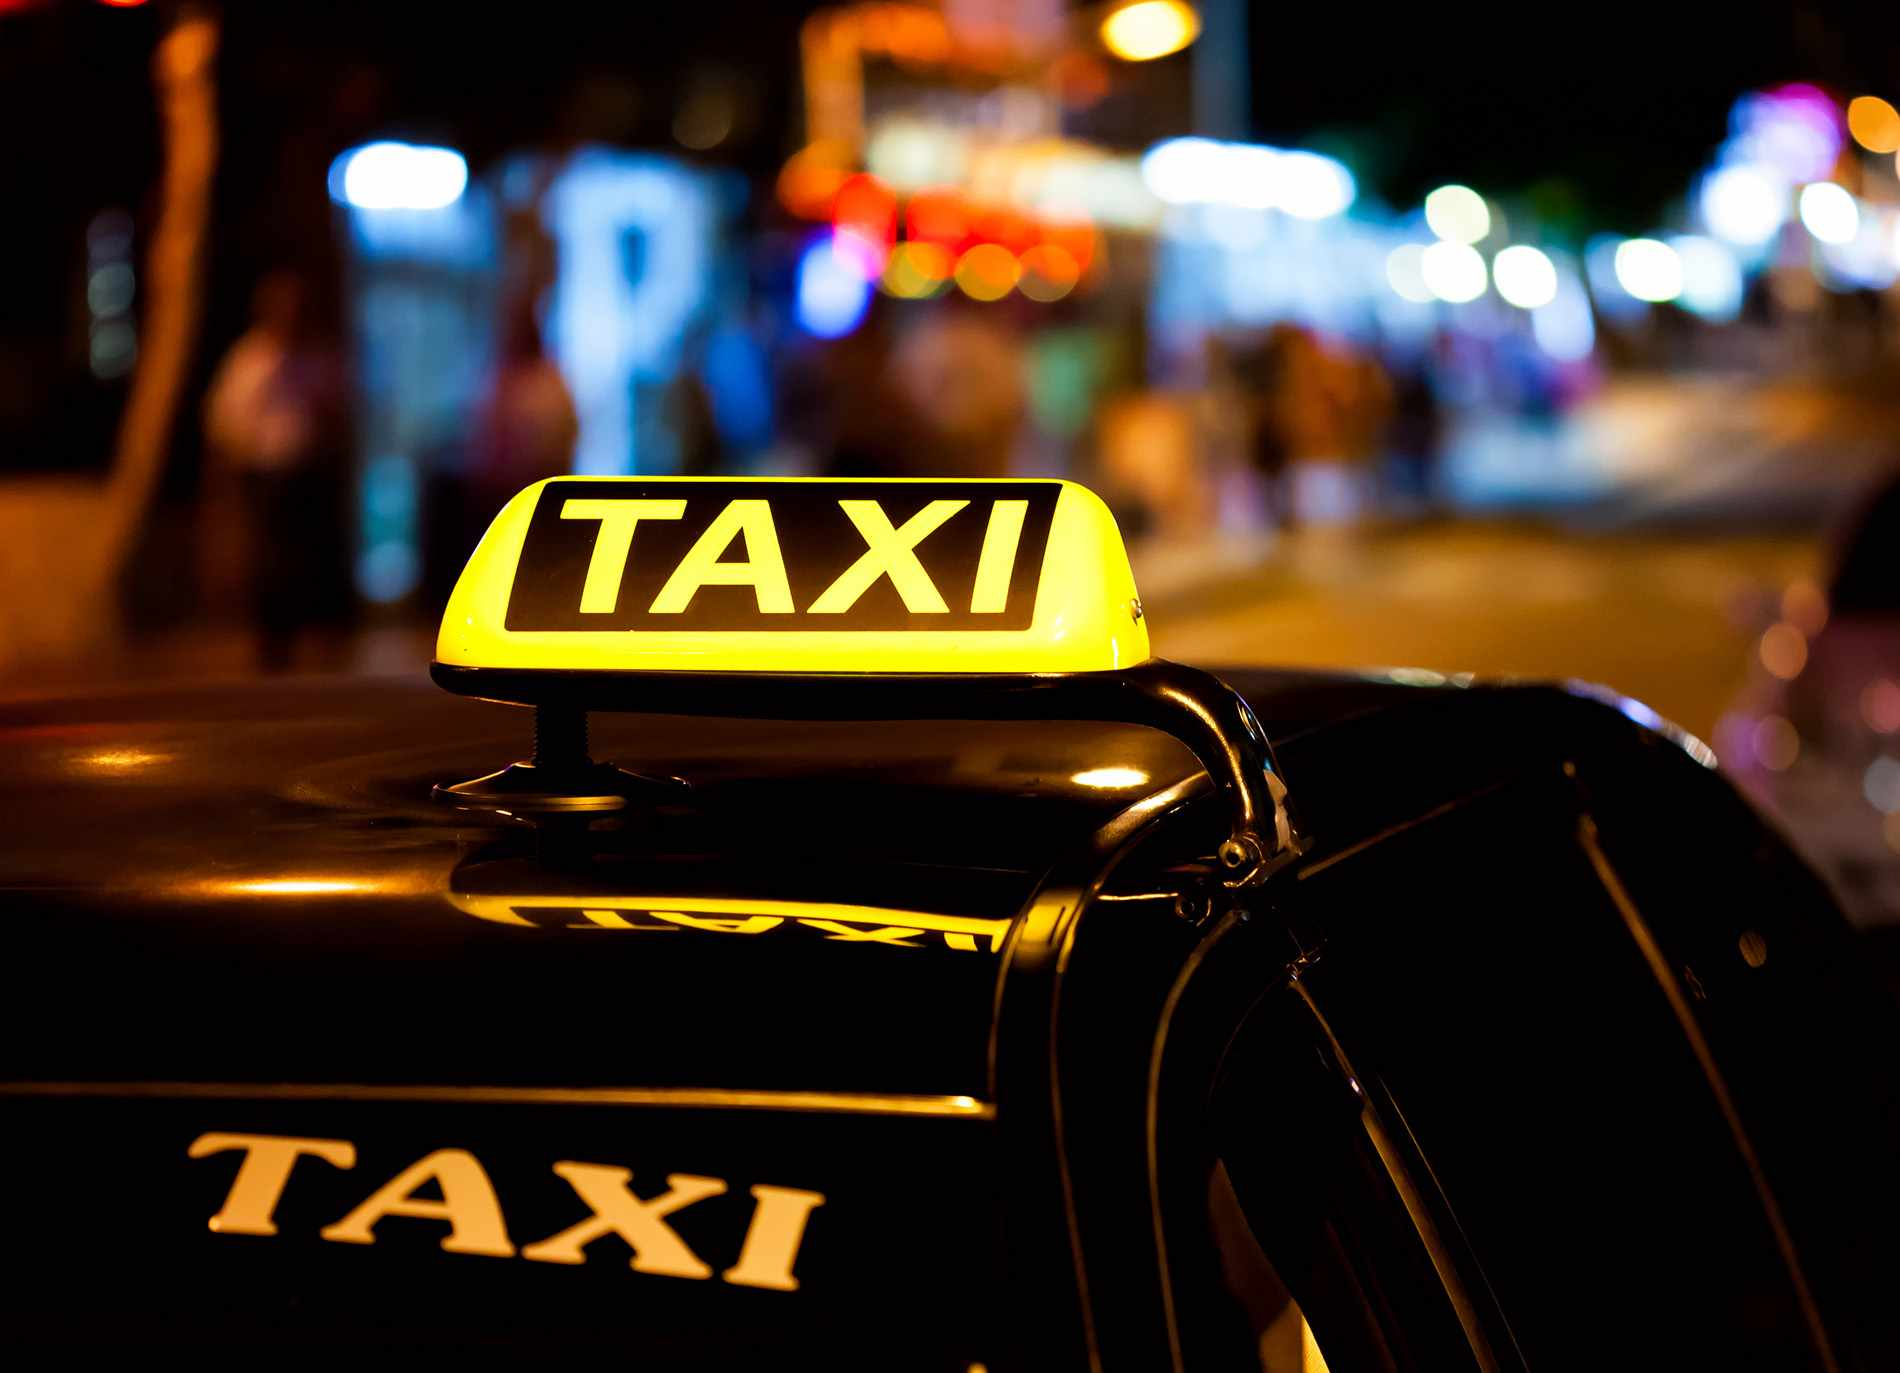 Interview with the manager of V-Taxis in Ayia Napa